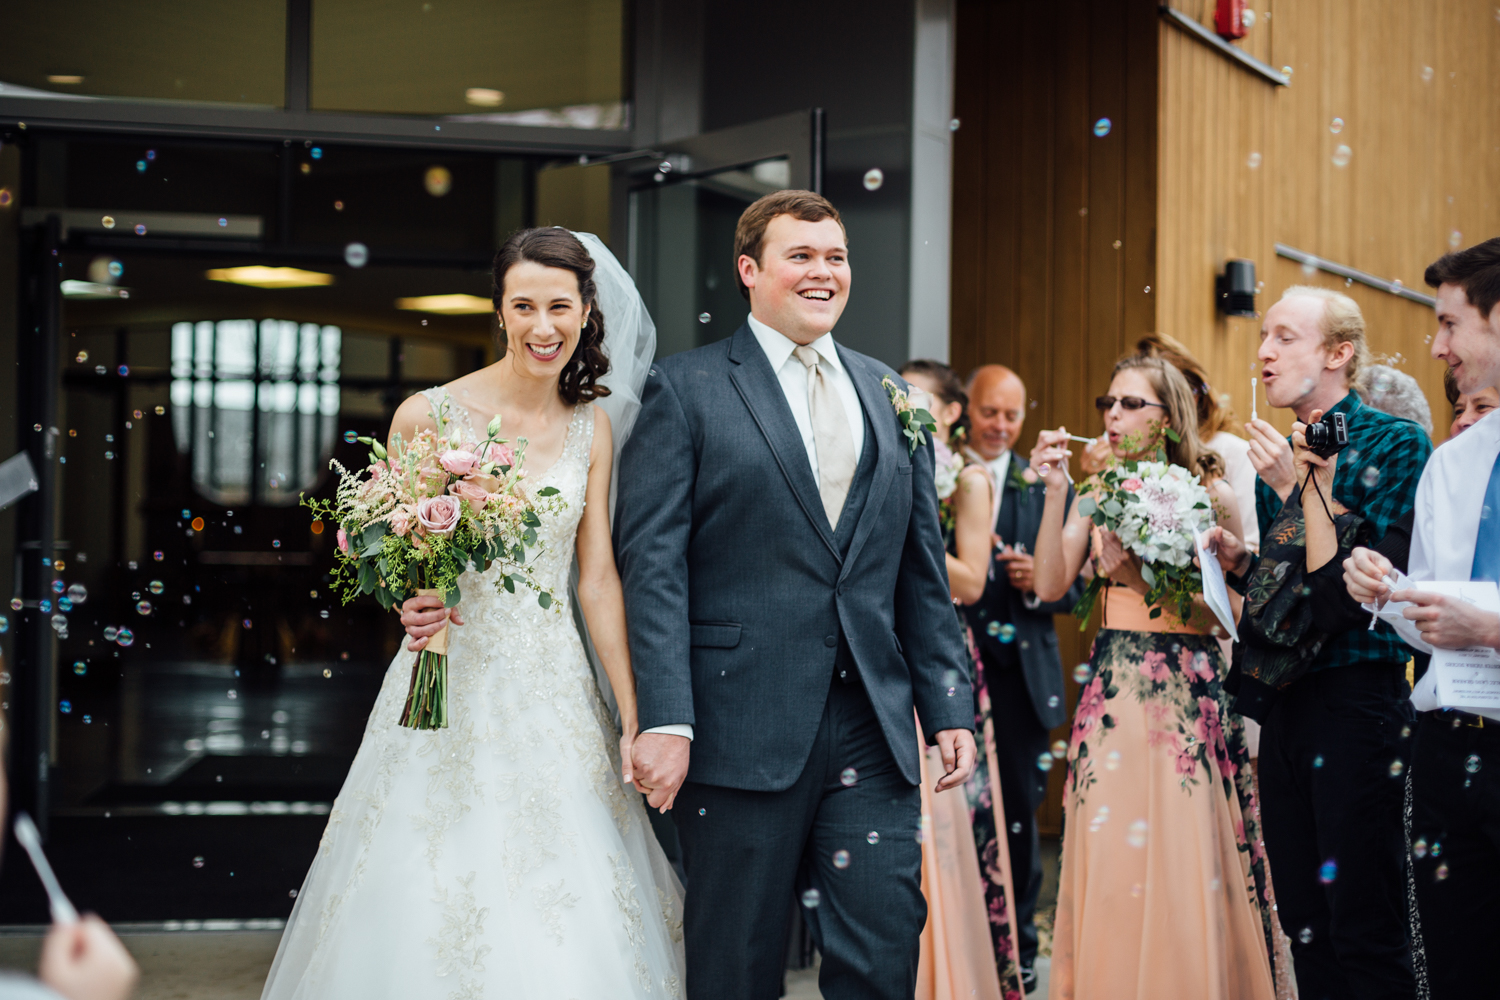 Fun, Intimate Spring Wedding by Corrie Mick Photography-48.jpg